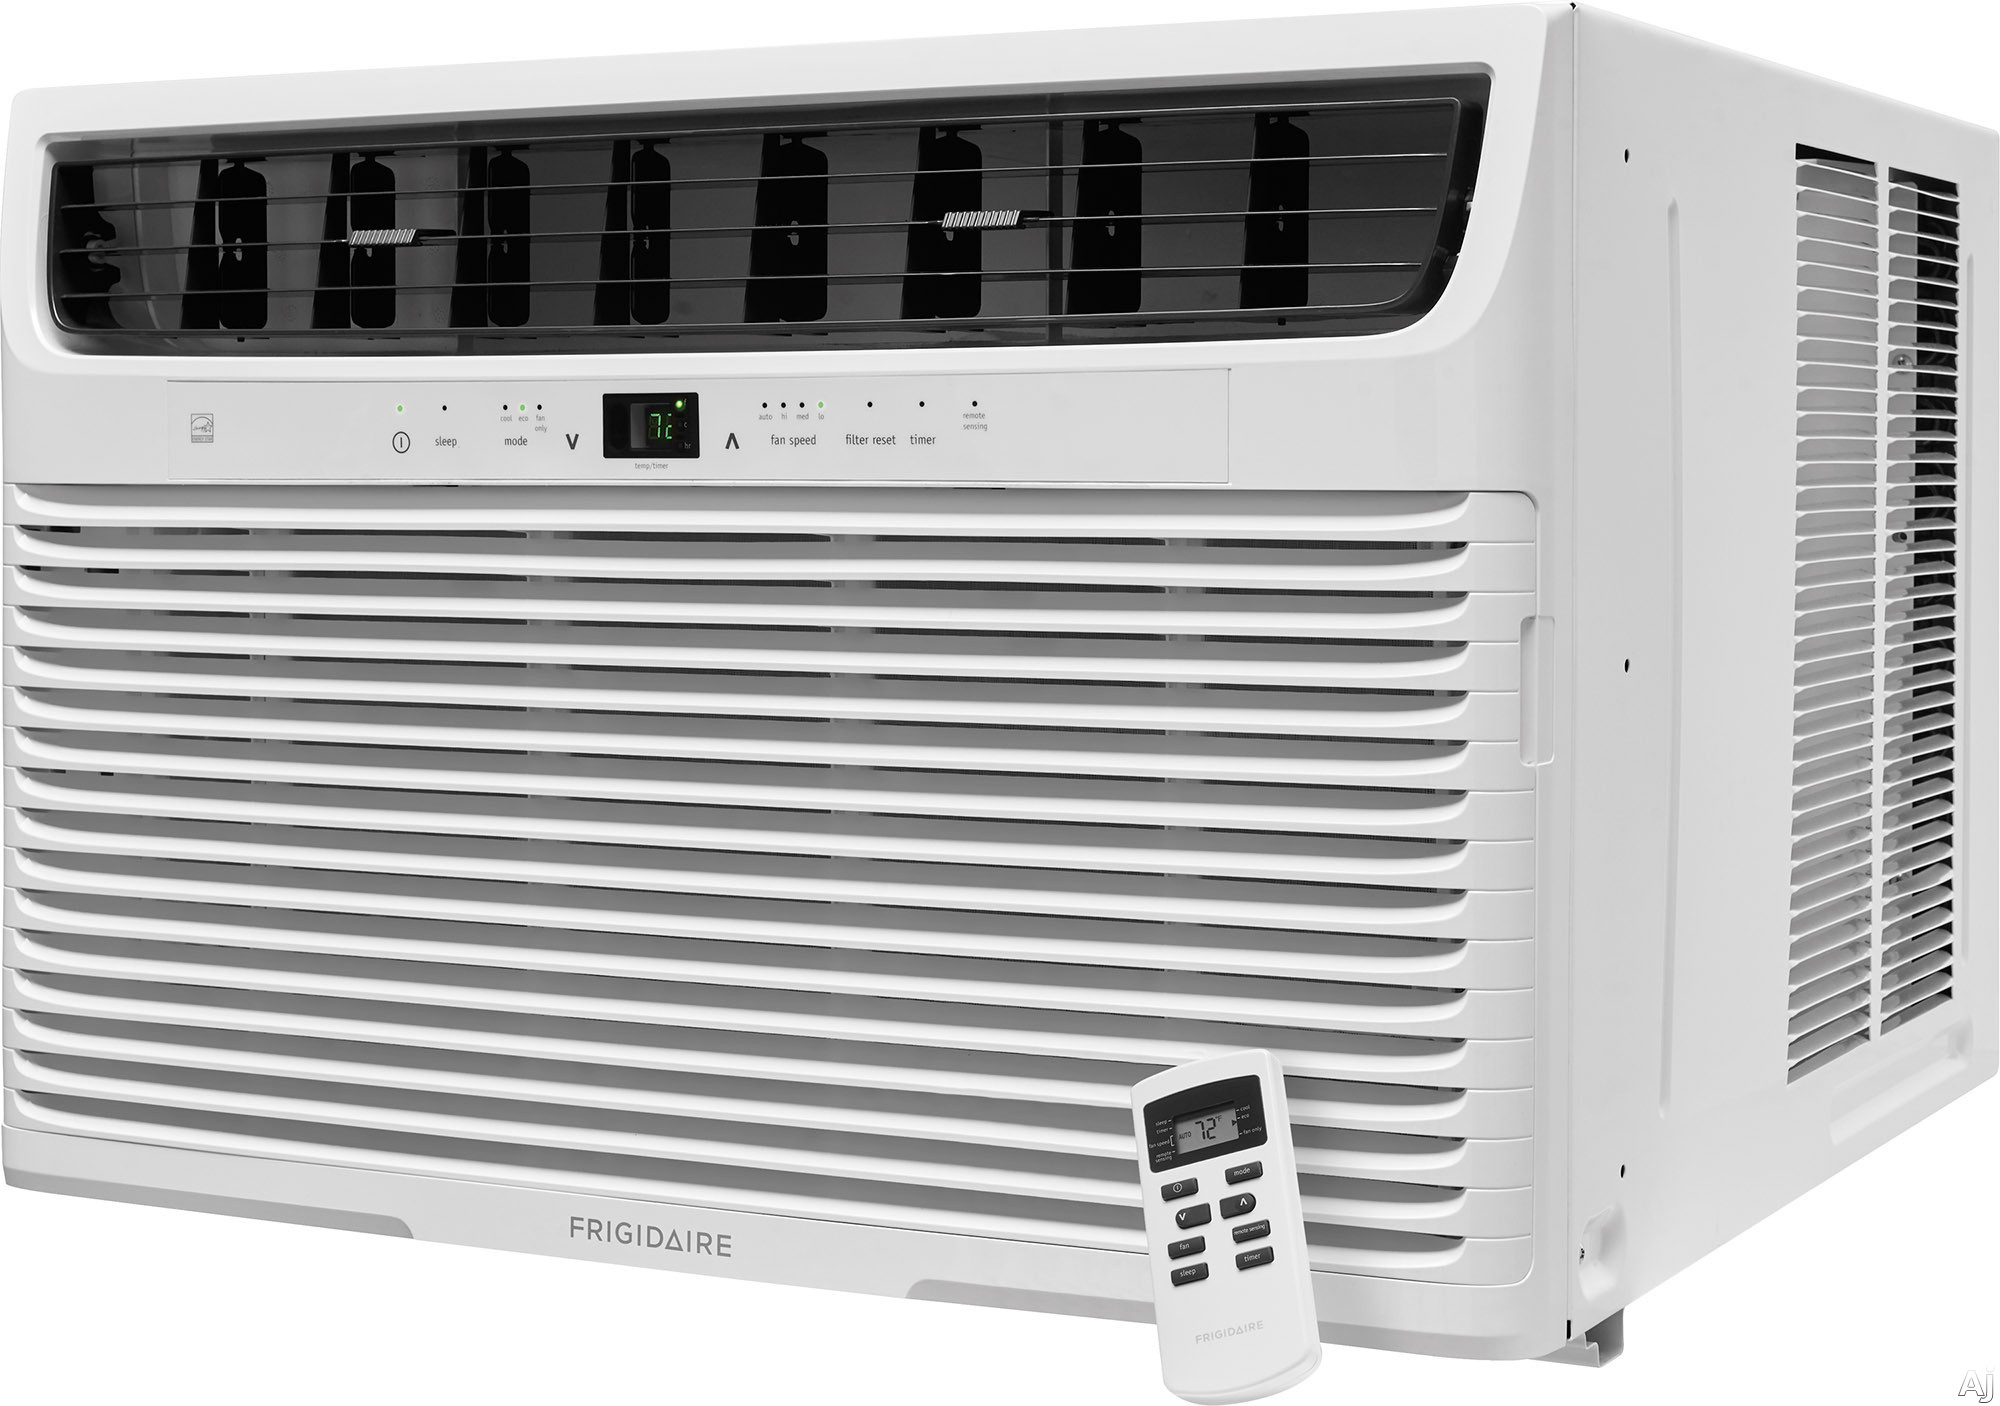 Frigidaire FFRE2233U2 22,000 BTU Room Air Conditioner with Effortless™ Remote Temperature Control, Effortless™ Clean Filter, SpaceWise® Adjustable Side Panels, Programmable 24-Hour Time